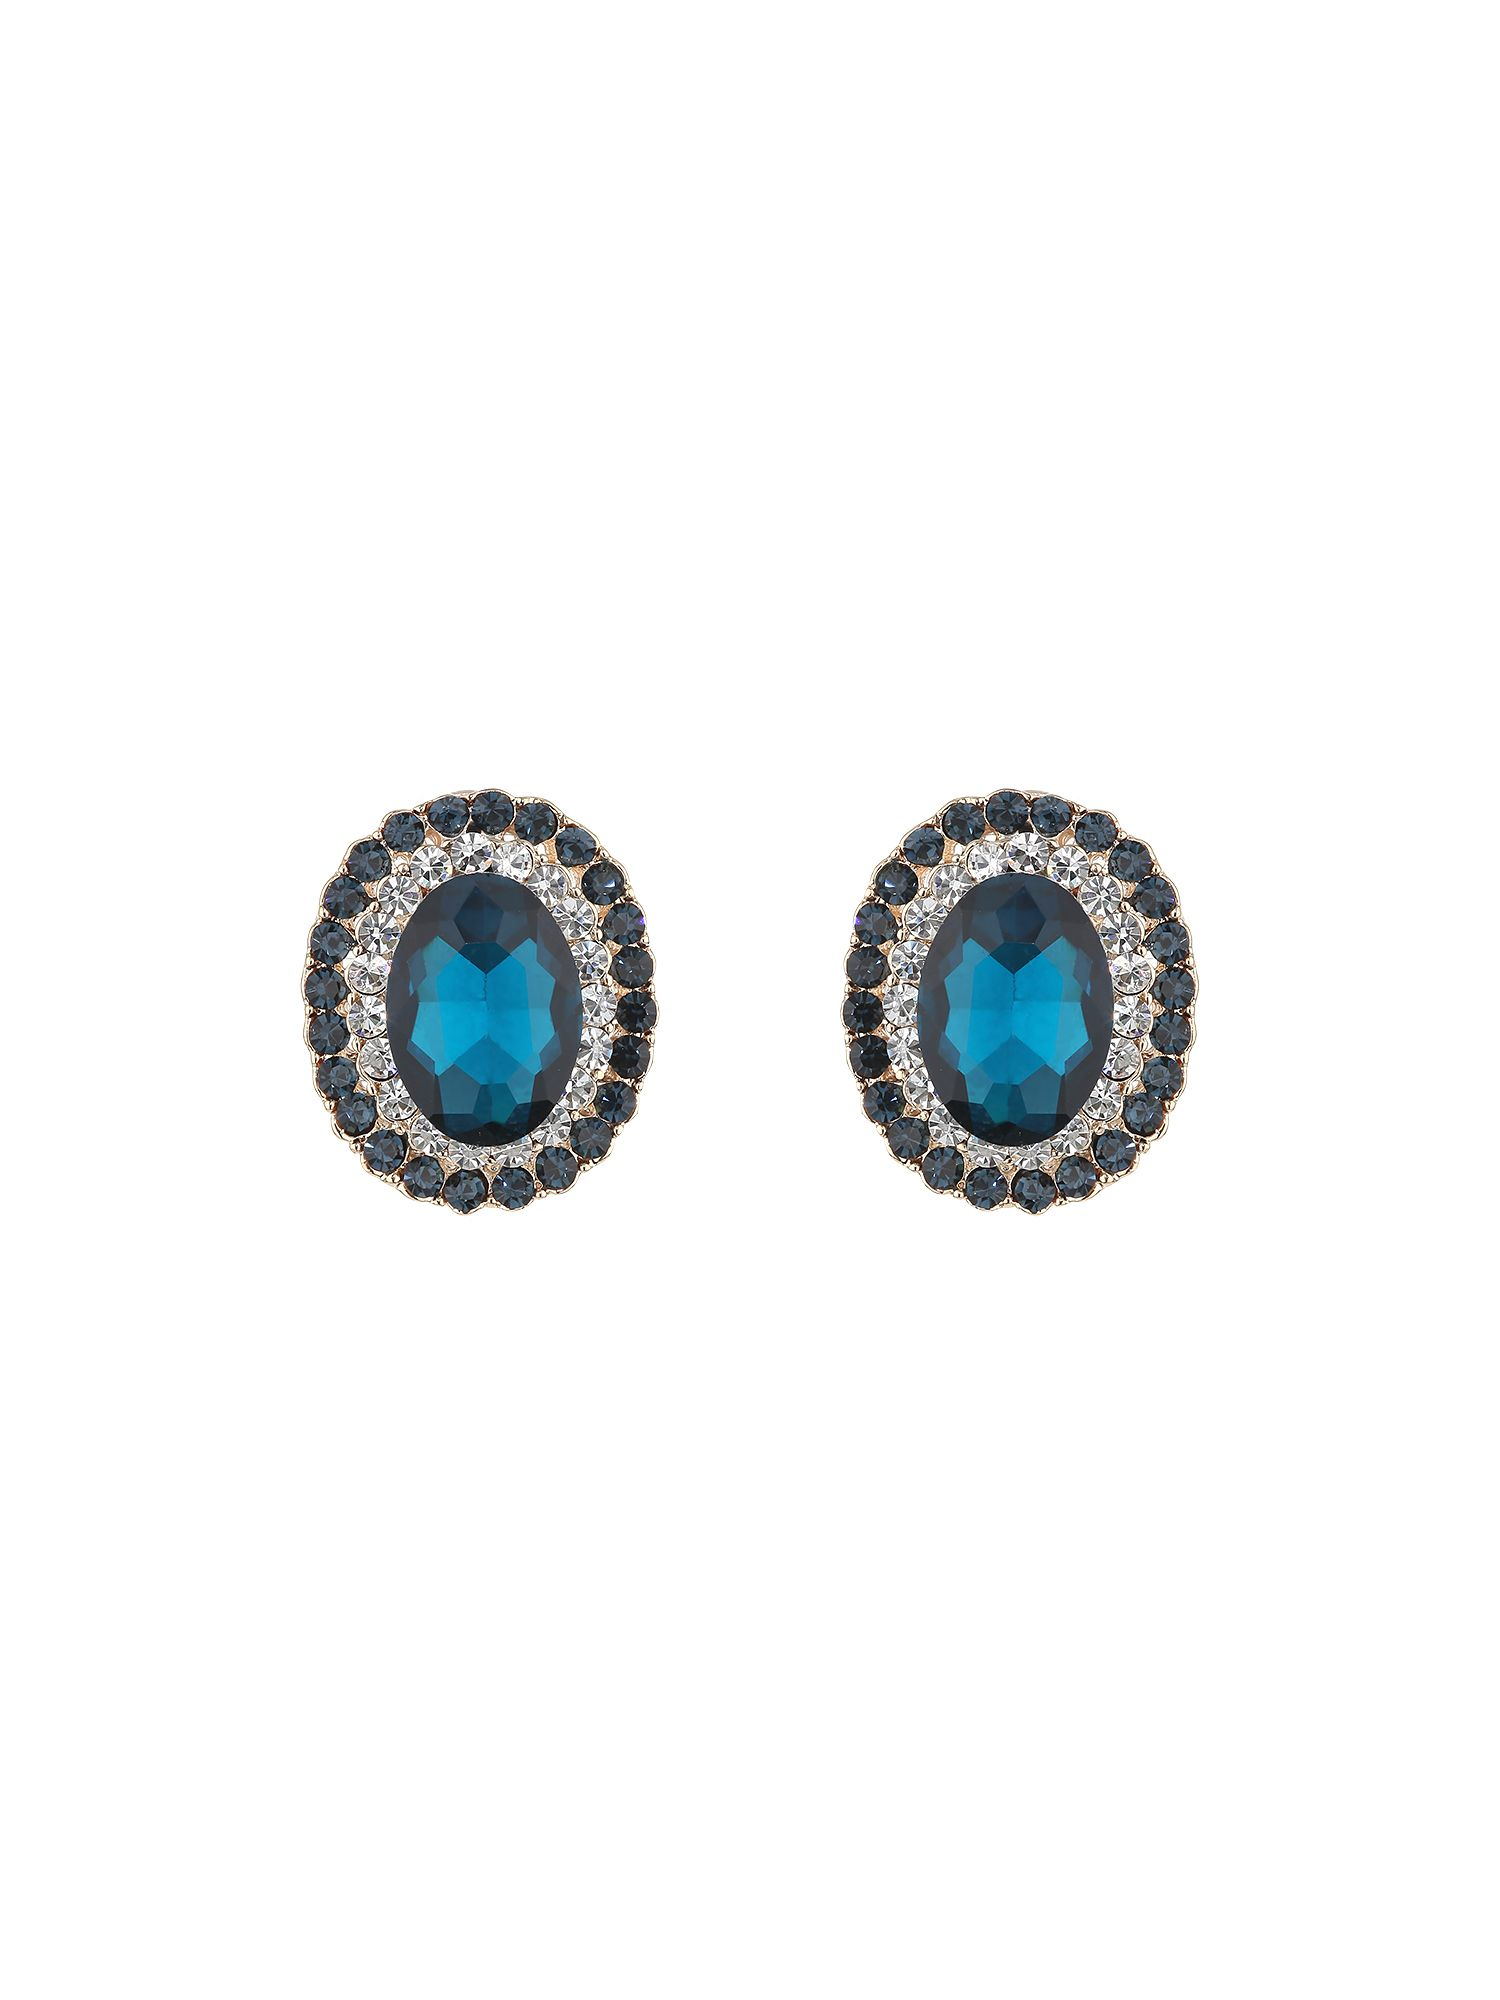 Oval stone surround earring